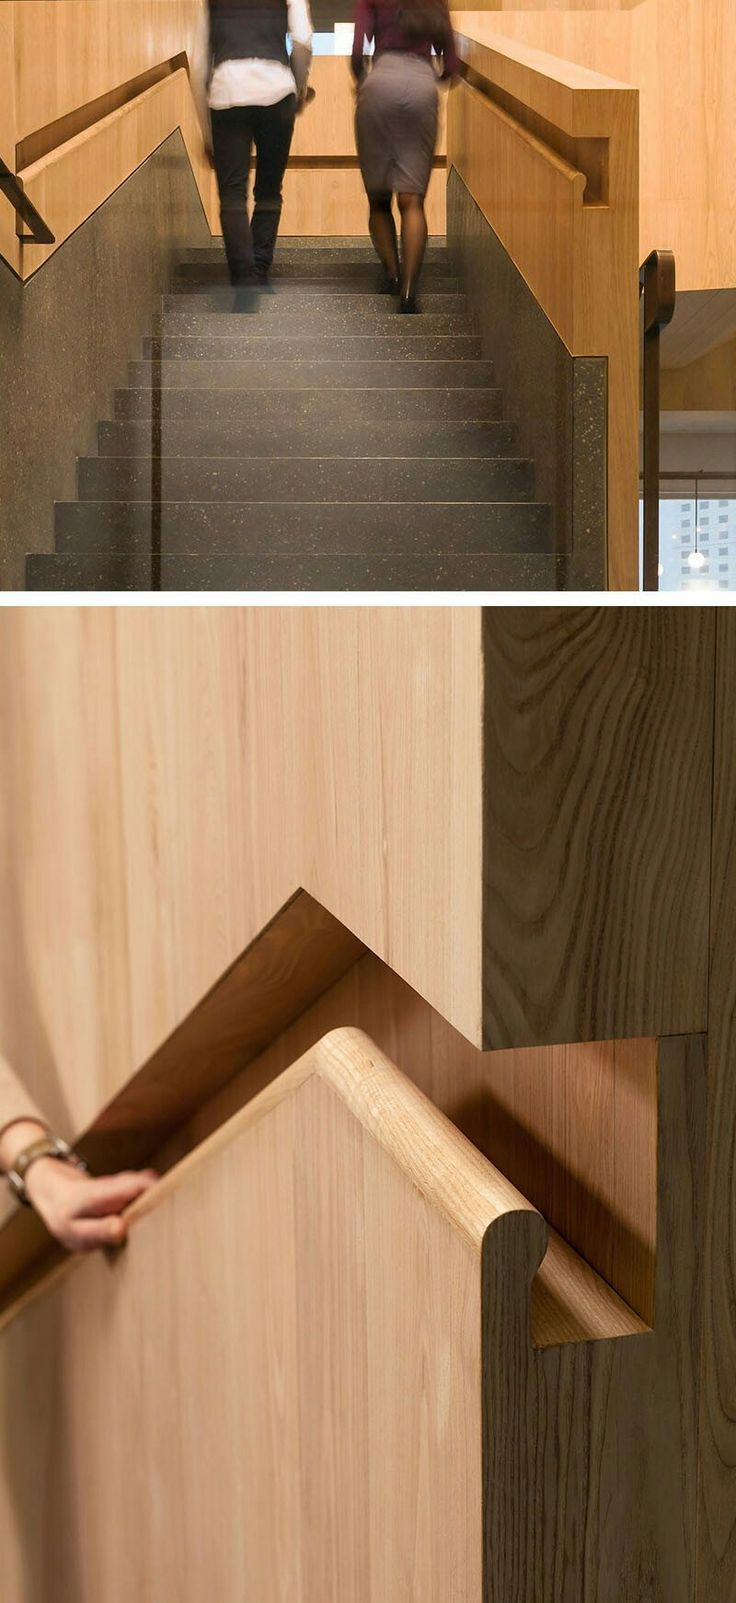 Built in handrail. Wood, marble, any material